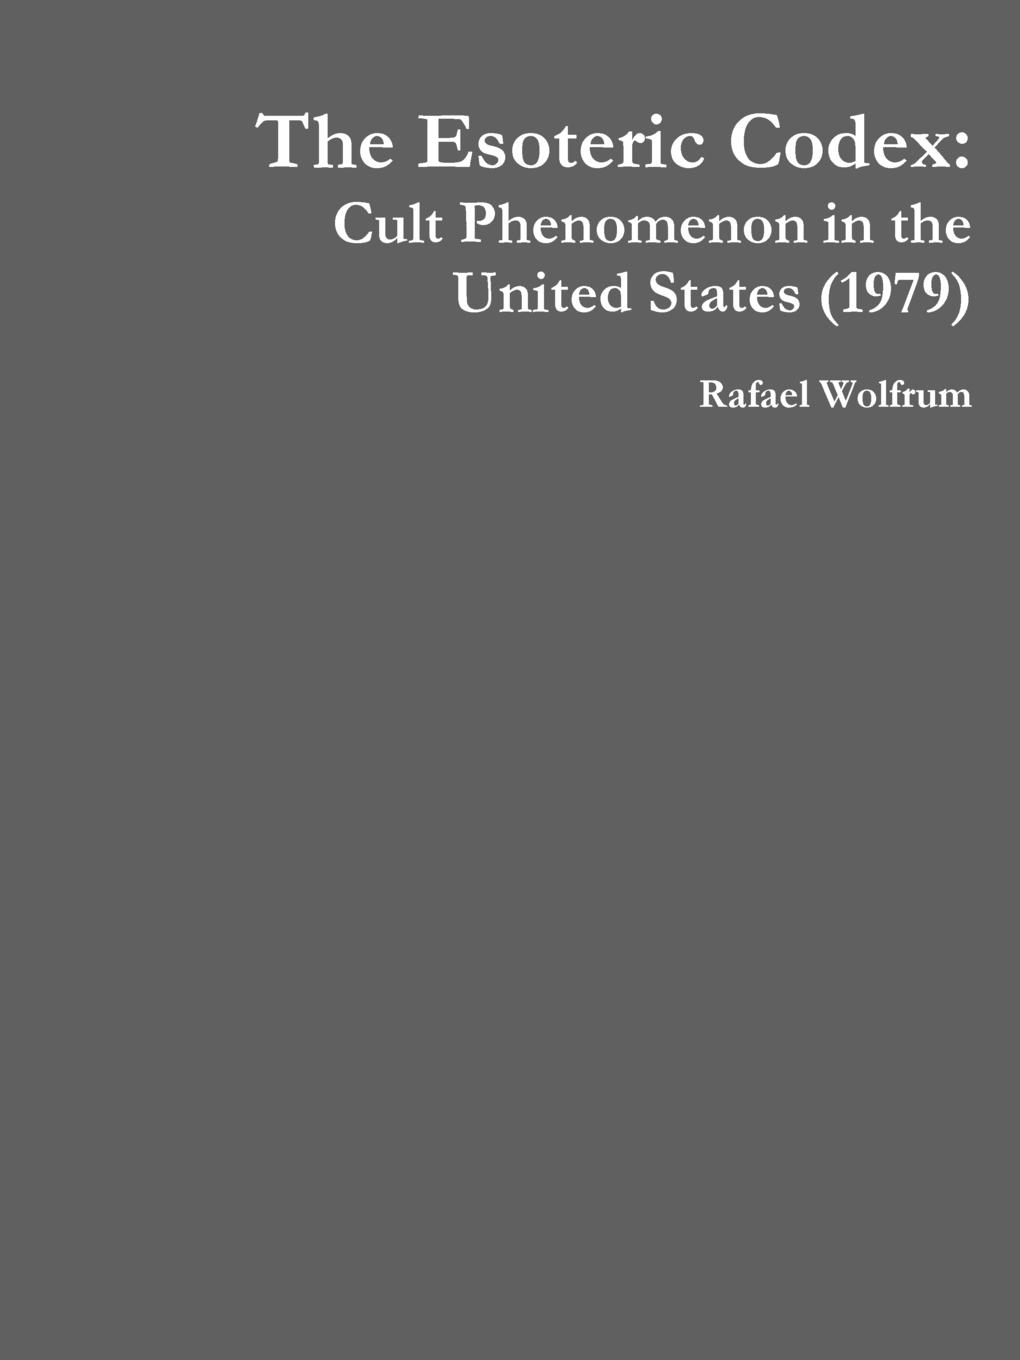 Rafael Wolfrum The Esoteric Codex. Cult Phenomenon in the United States (1979) esoteric 03